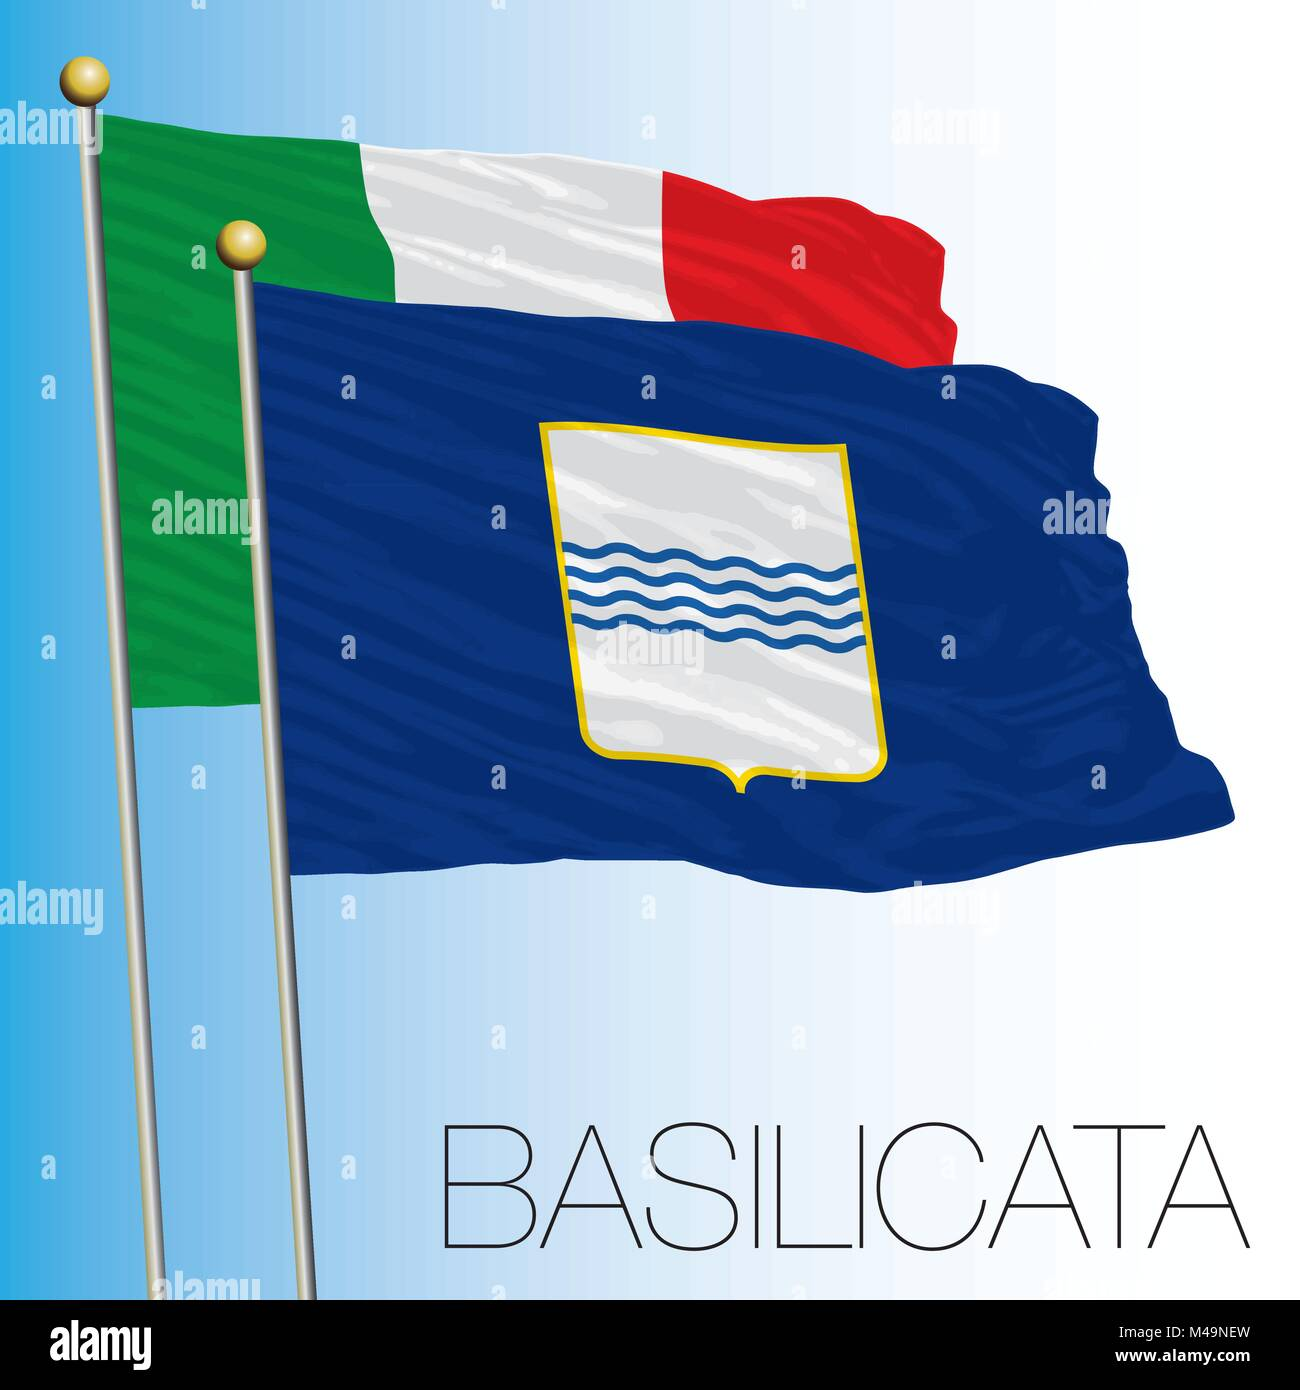 Basilicata regional flag, Italian Republic, Italy, European Union - Stock Vector